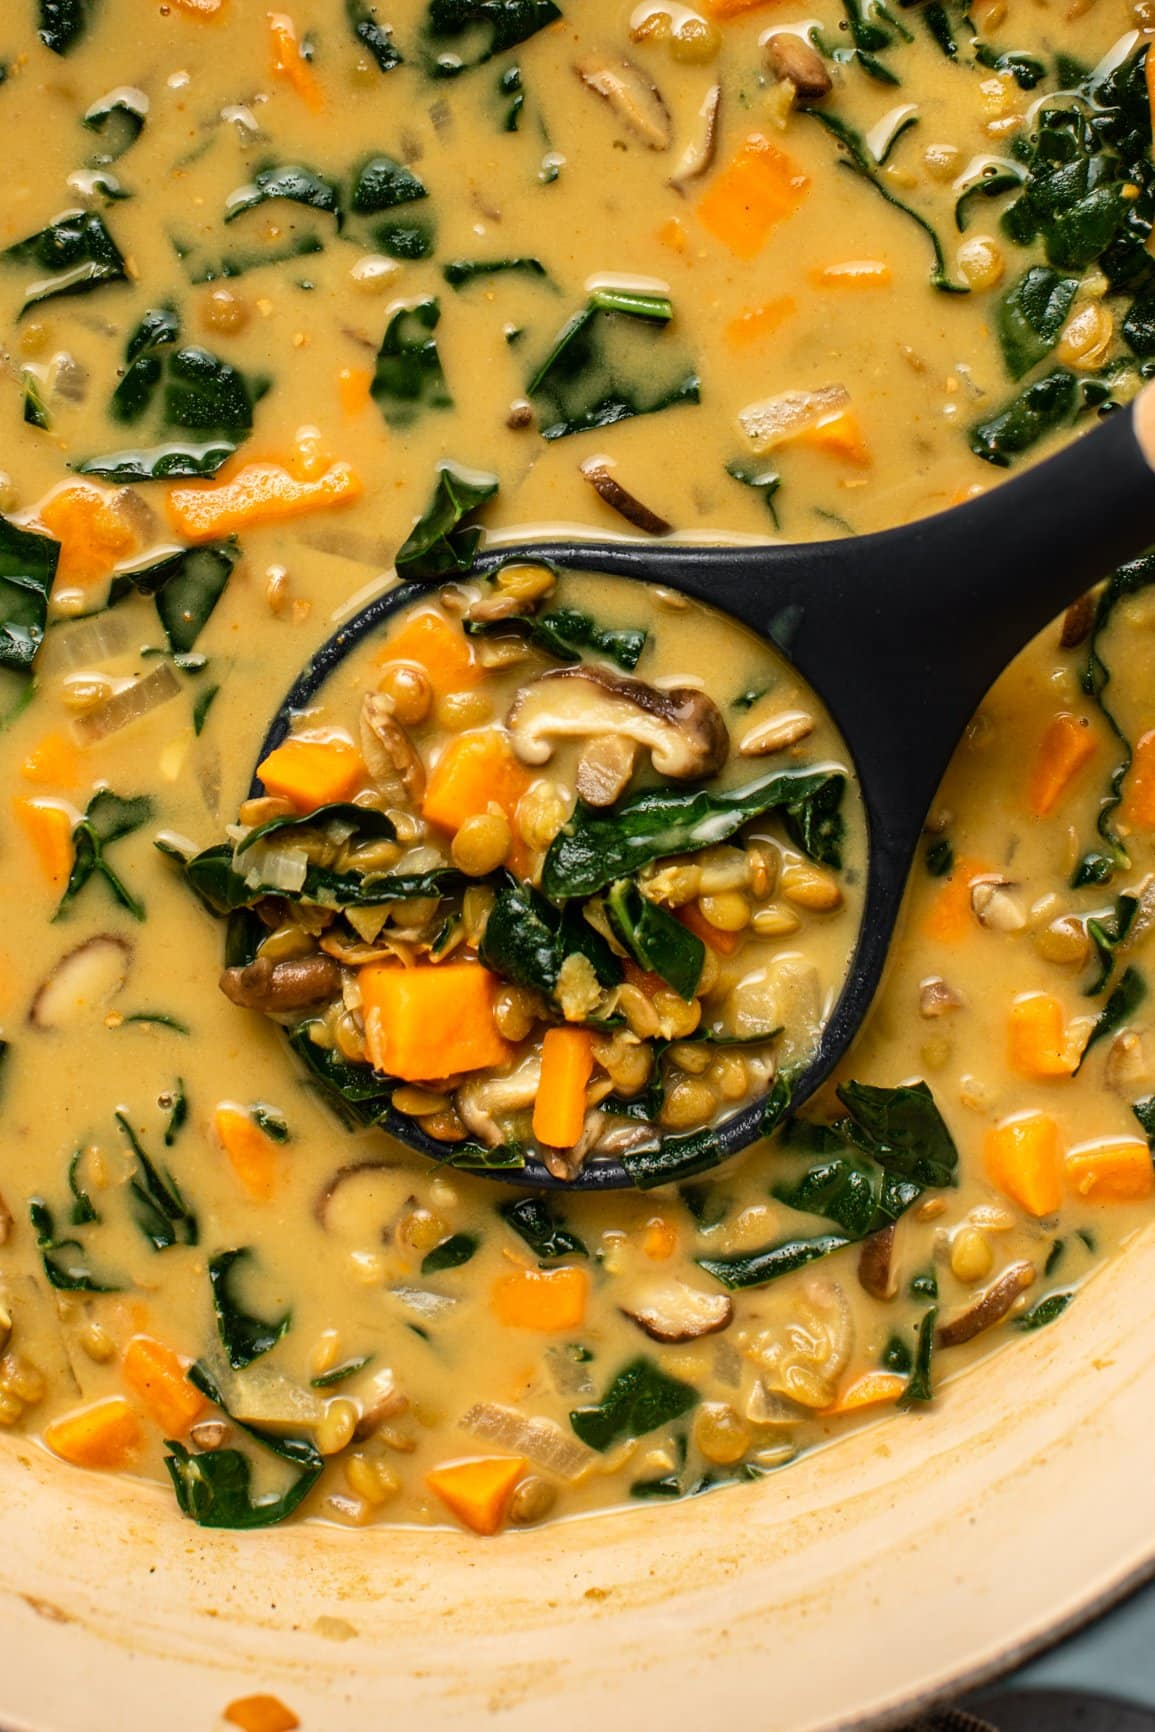 close up photo of soup ladle scooping out some coconut curry lentil soup with sweet potato, shiitake mushrooms, and kale